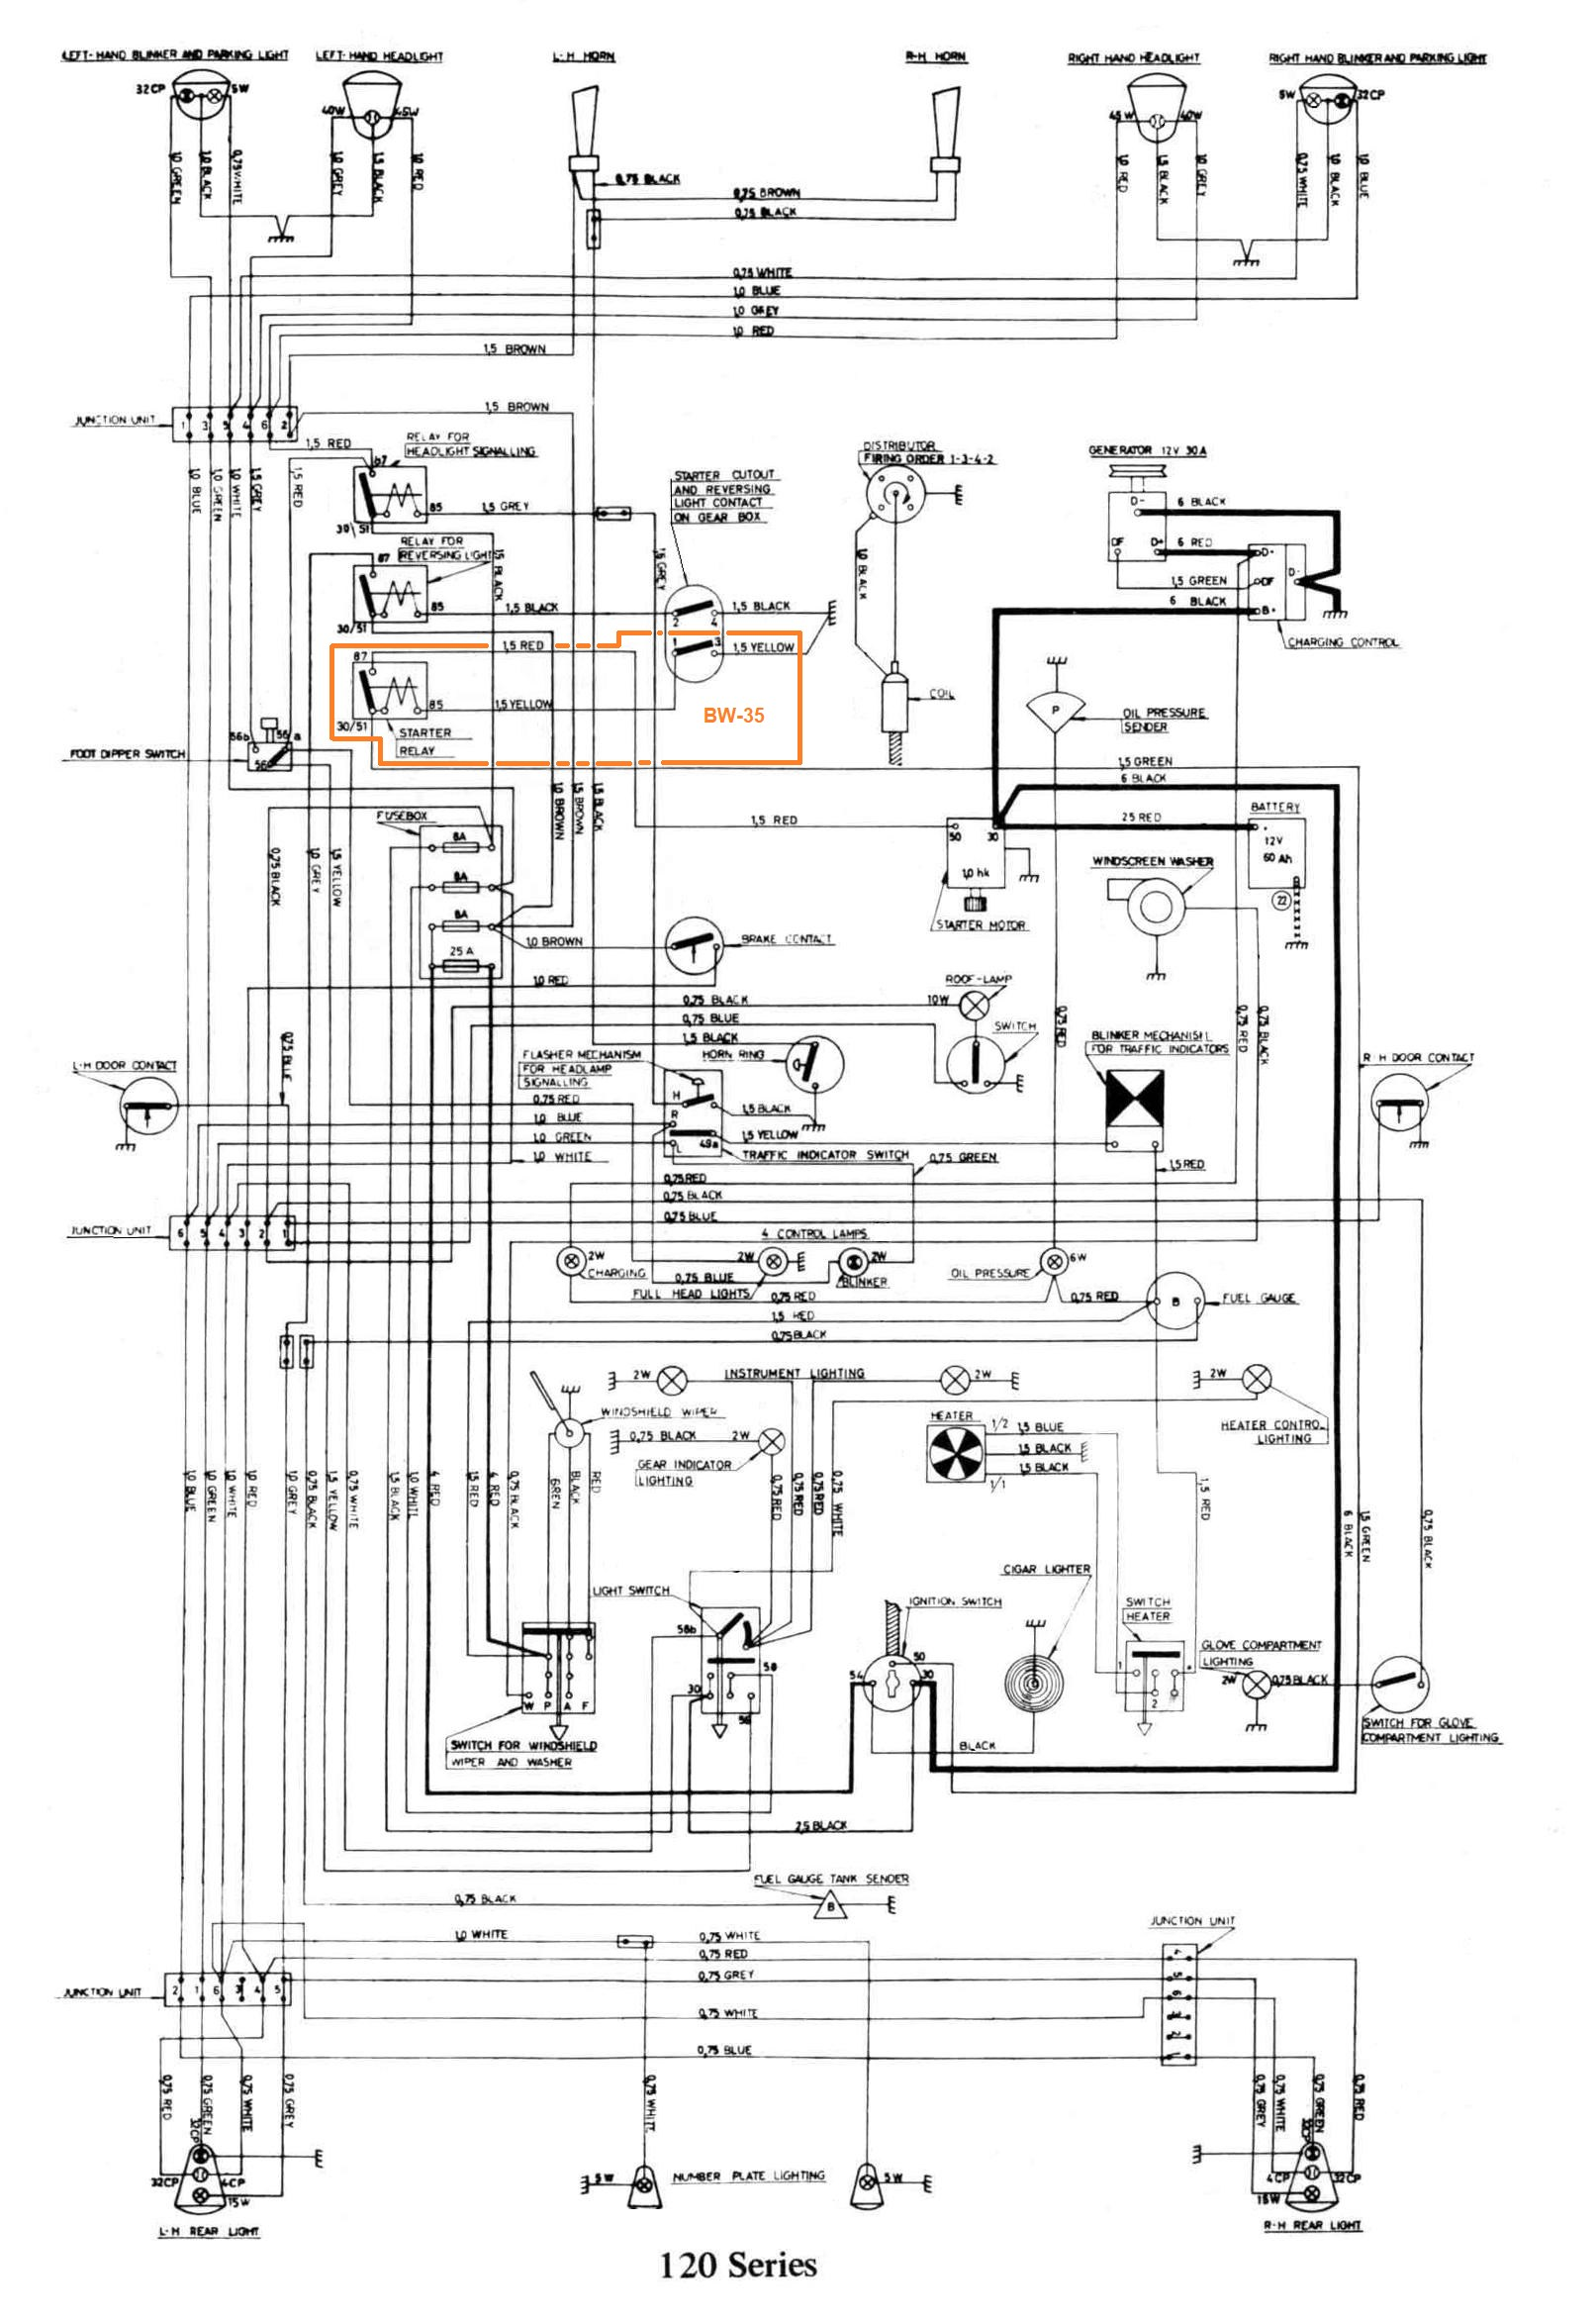 hight resolution of wiring diagram volvo v70 2000 wiring diagram name volvo v70 2004 electrical diagram 2000 volvo v70